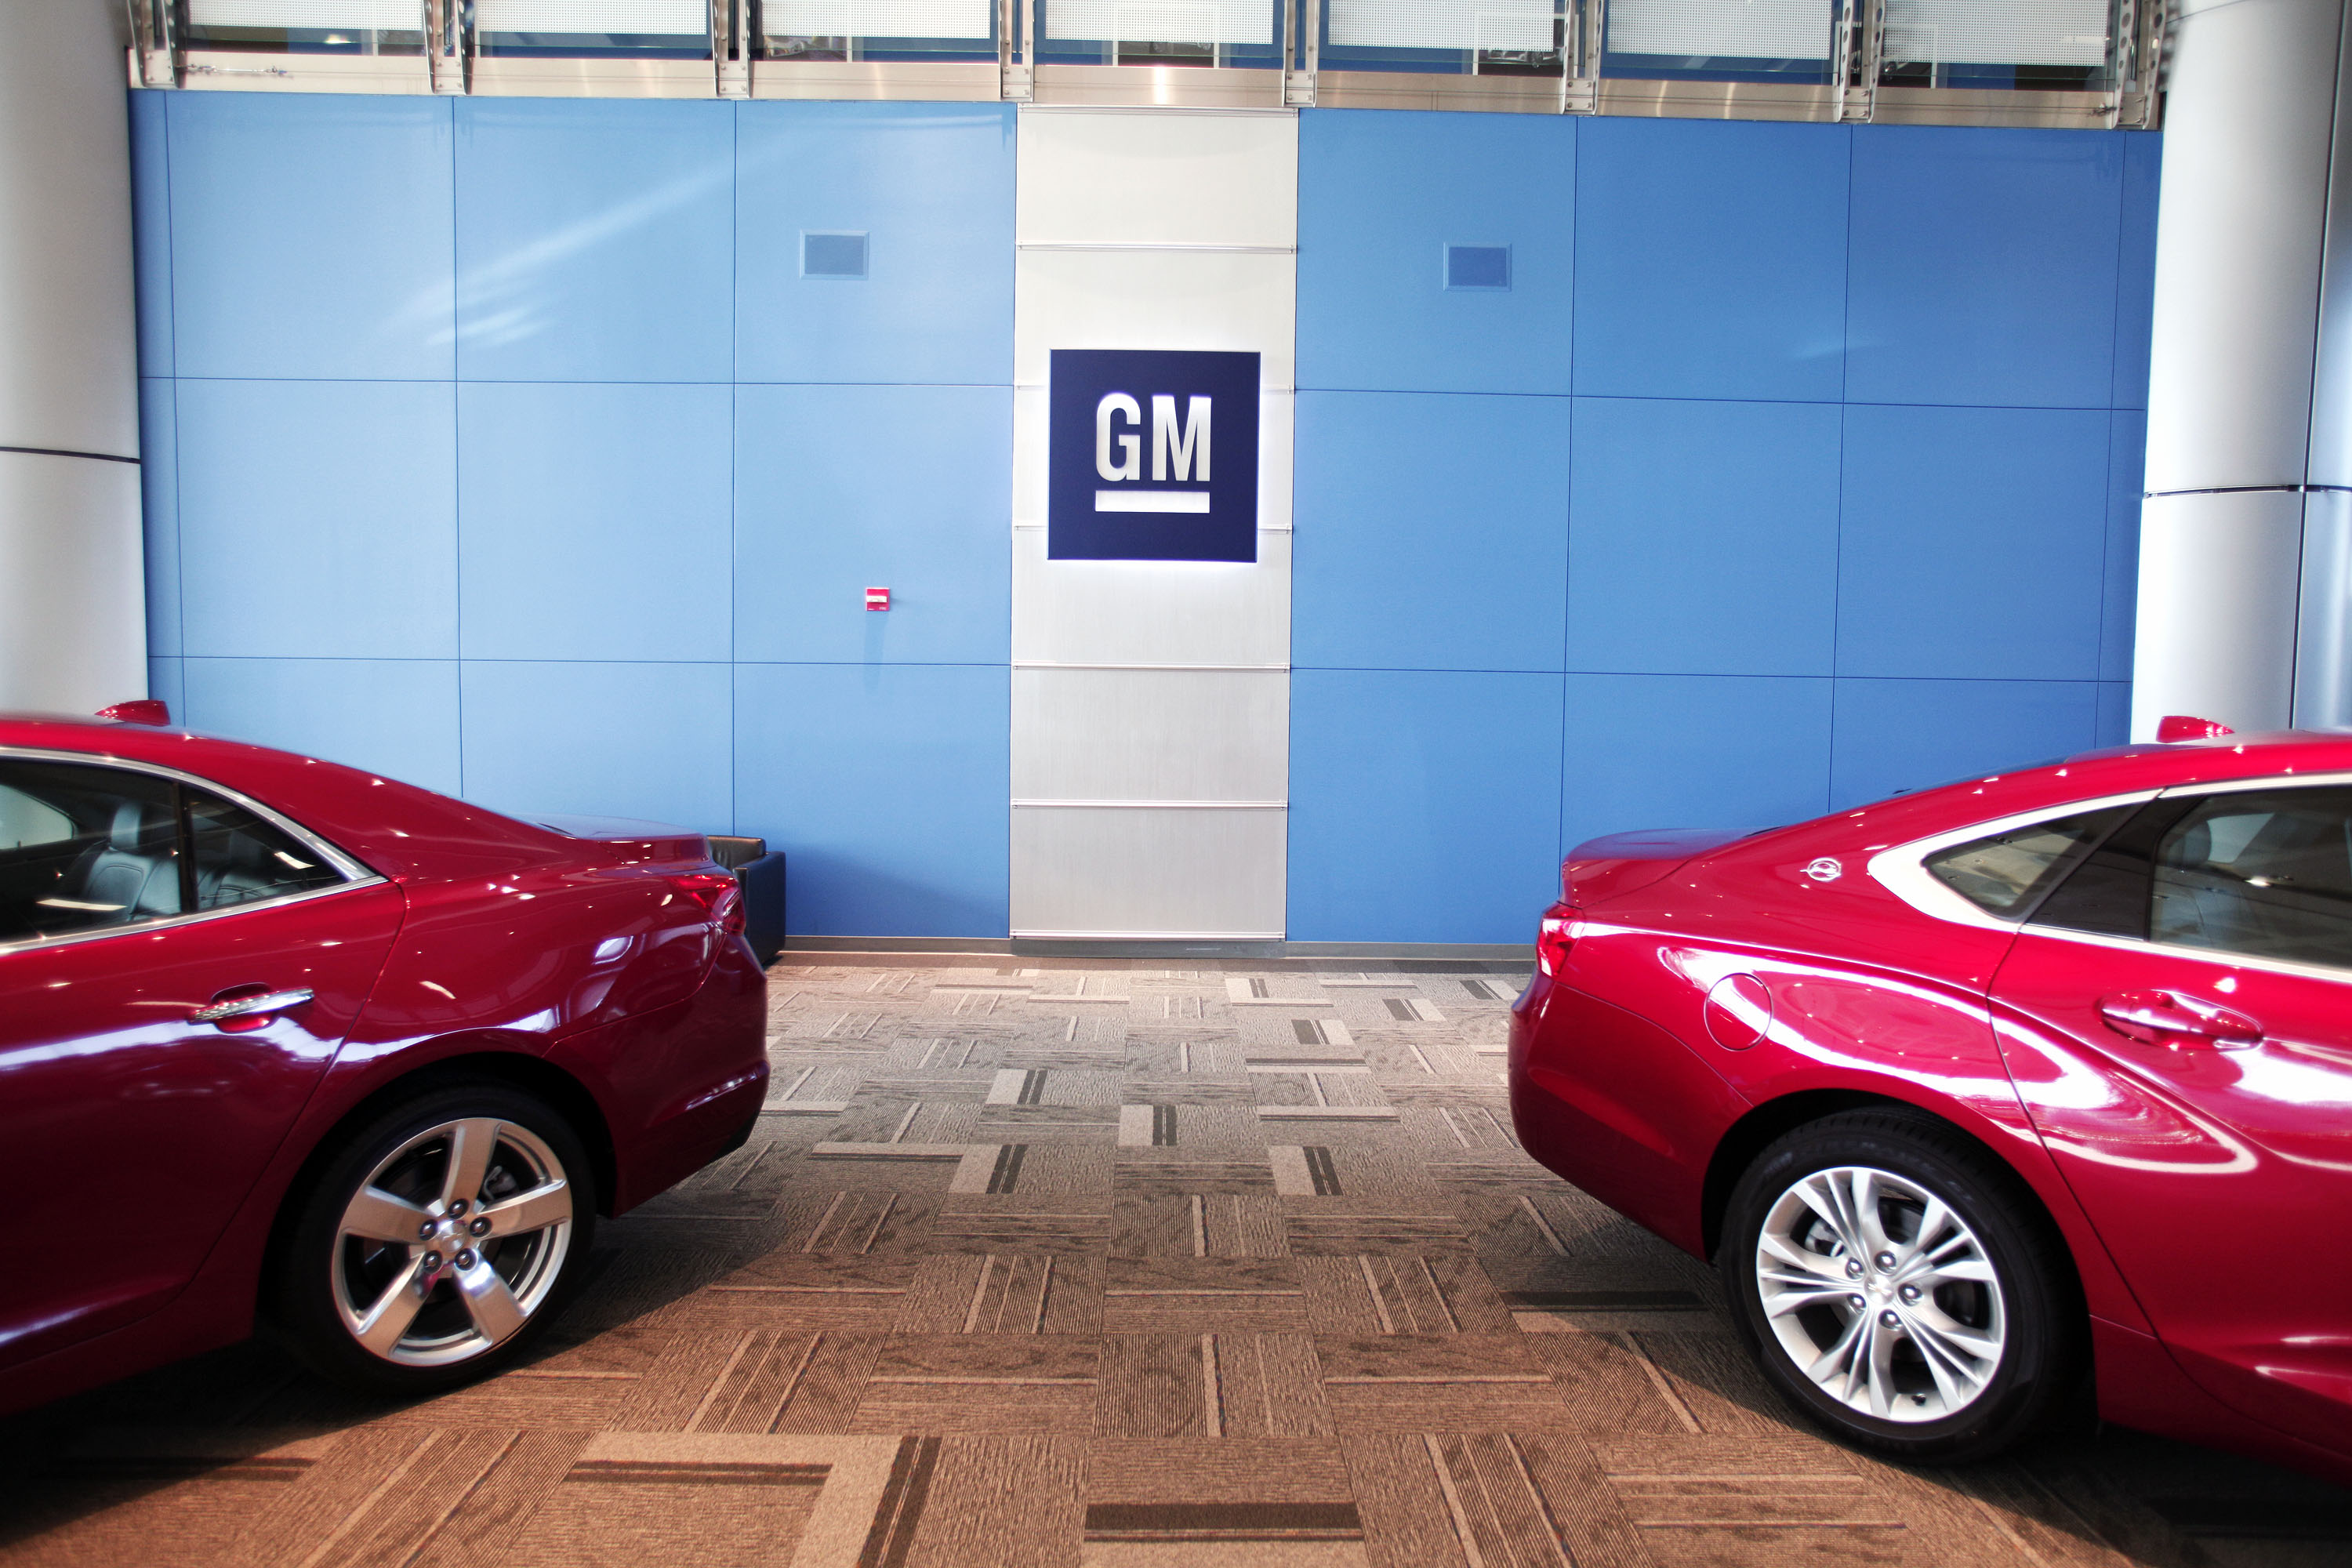 Of the United States' top automakers, General Motors missed expectations, but said sales increased 0.2 percent thanks to gains in its sport utility vehicles